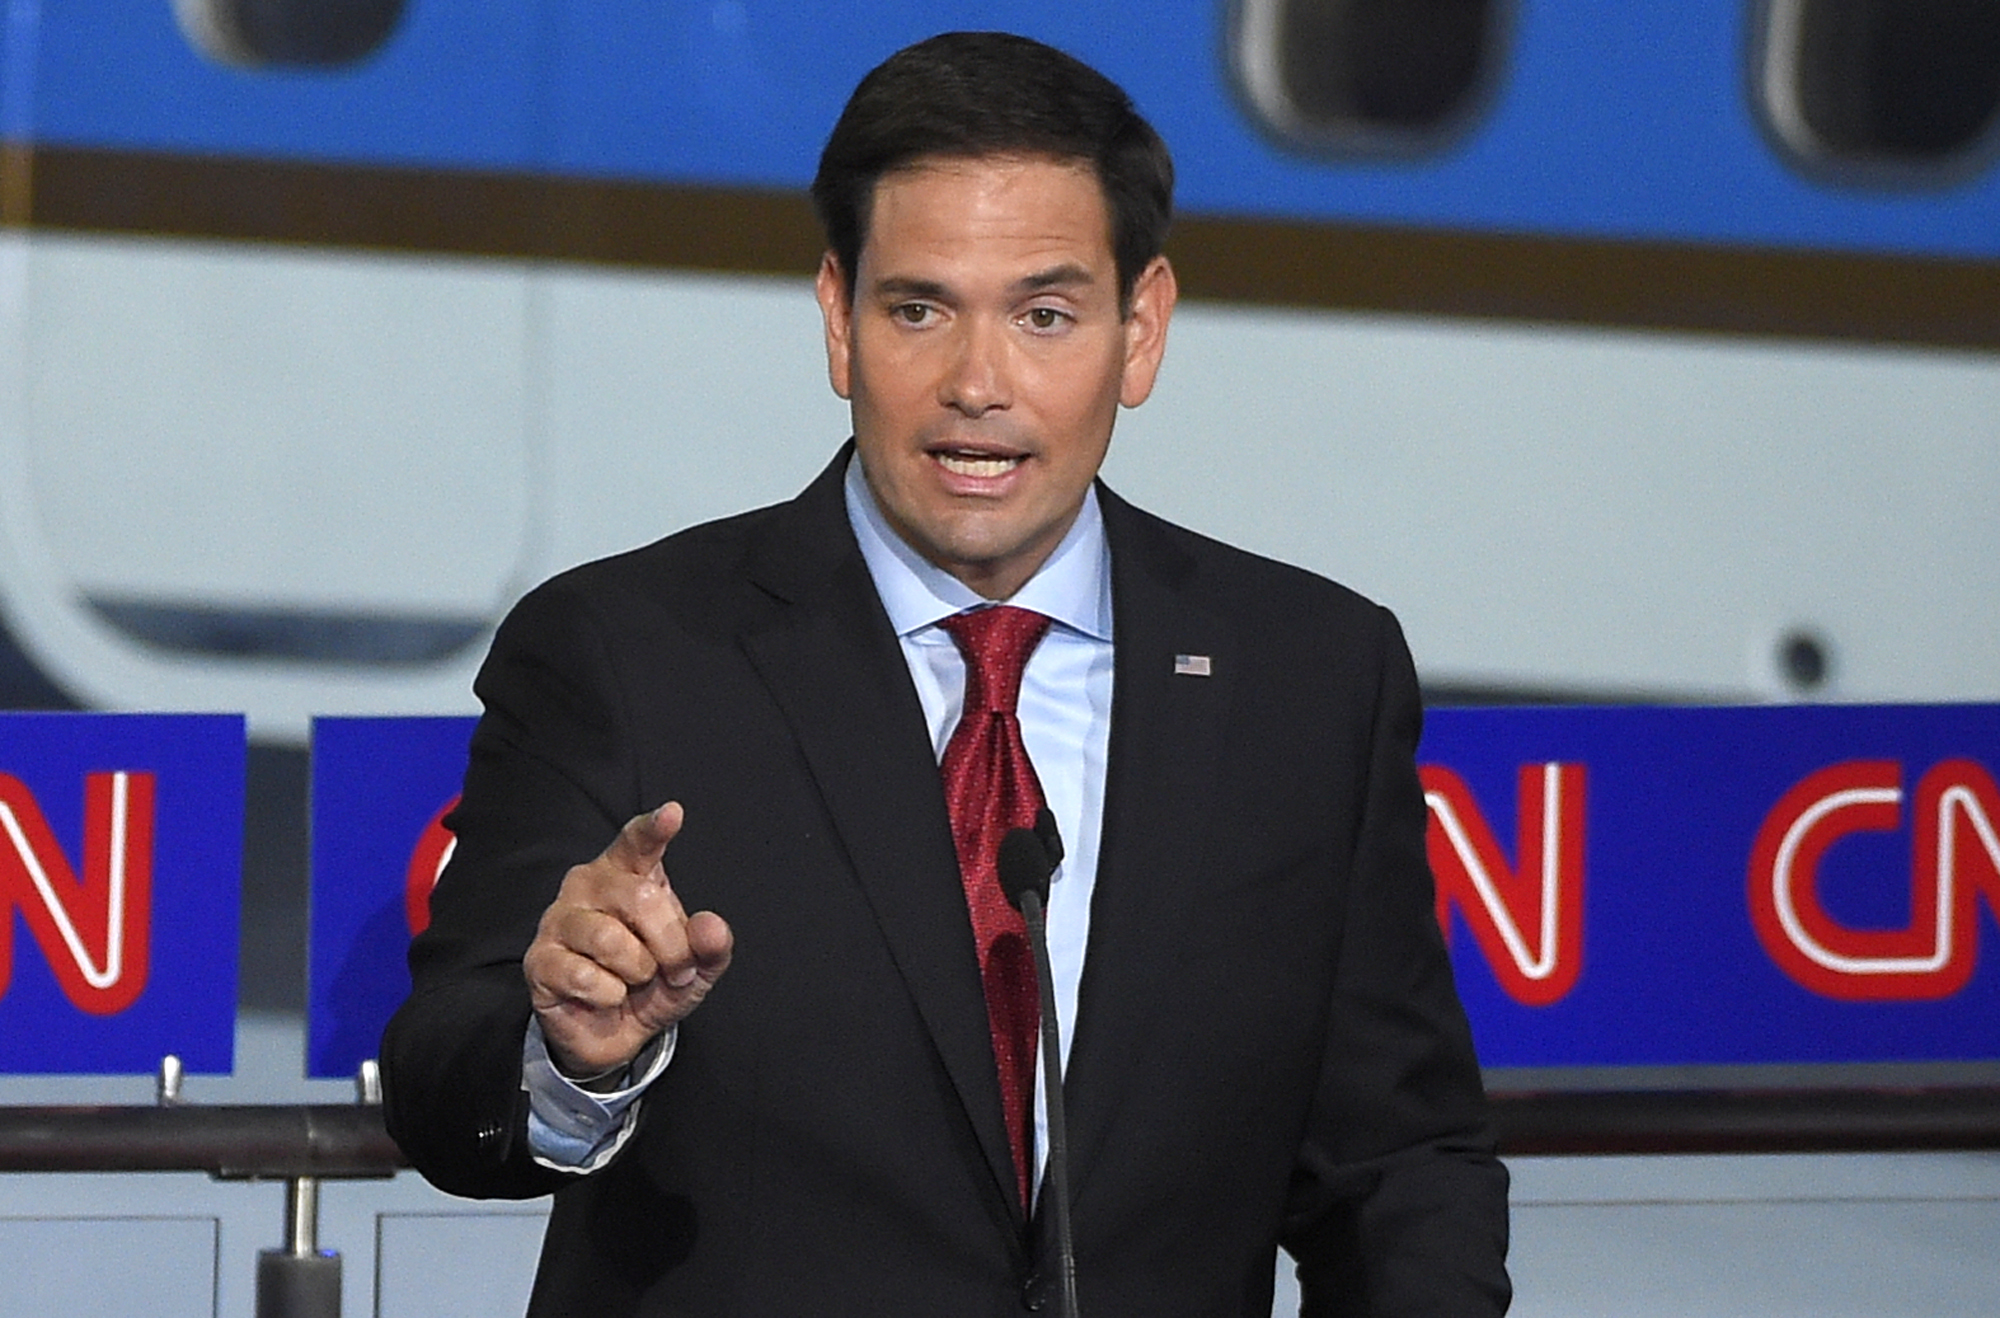 Republican presidential candidate, Sen. Marco Rubio, R-Fla., speaks during the CNN Republican presidential debate at the Ronald Reagan Presidential Library and Museum on Wednesday, Sept. 16, 2015.